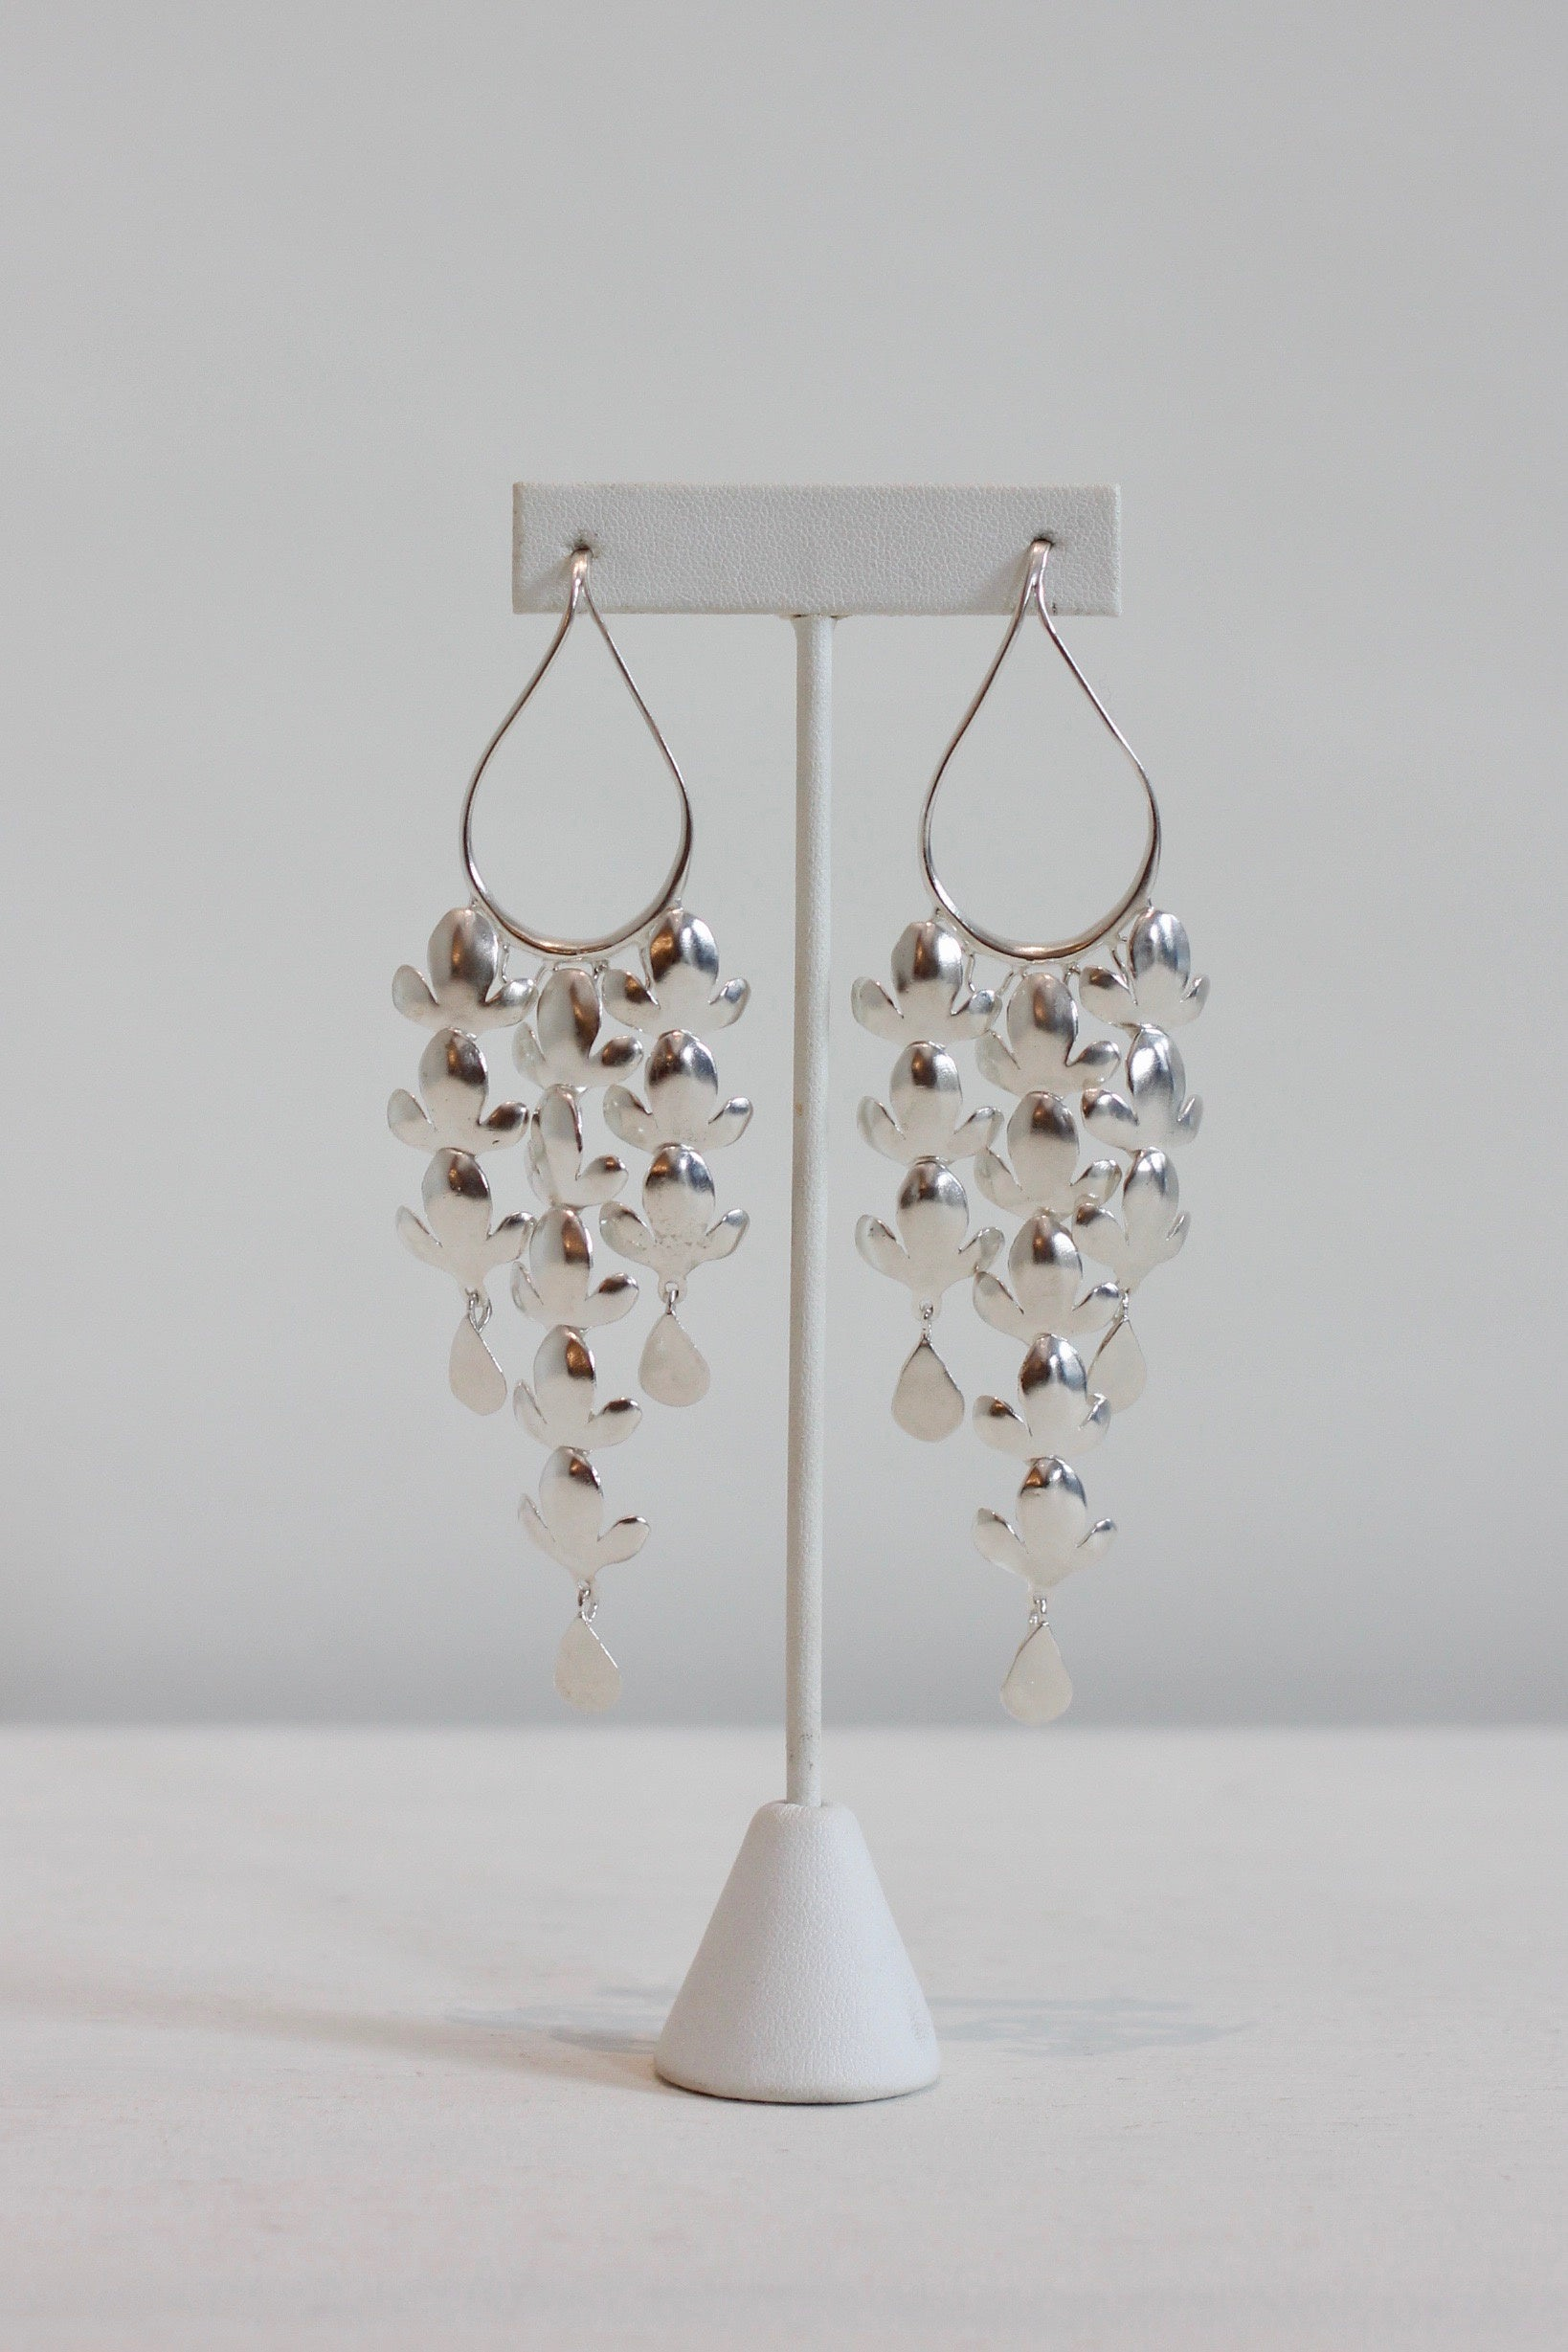 ariana boussard sterling silver earrings